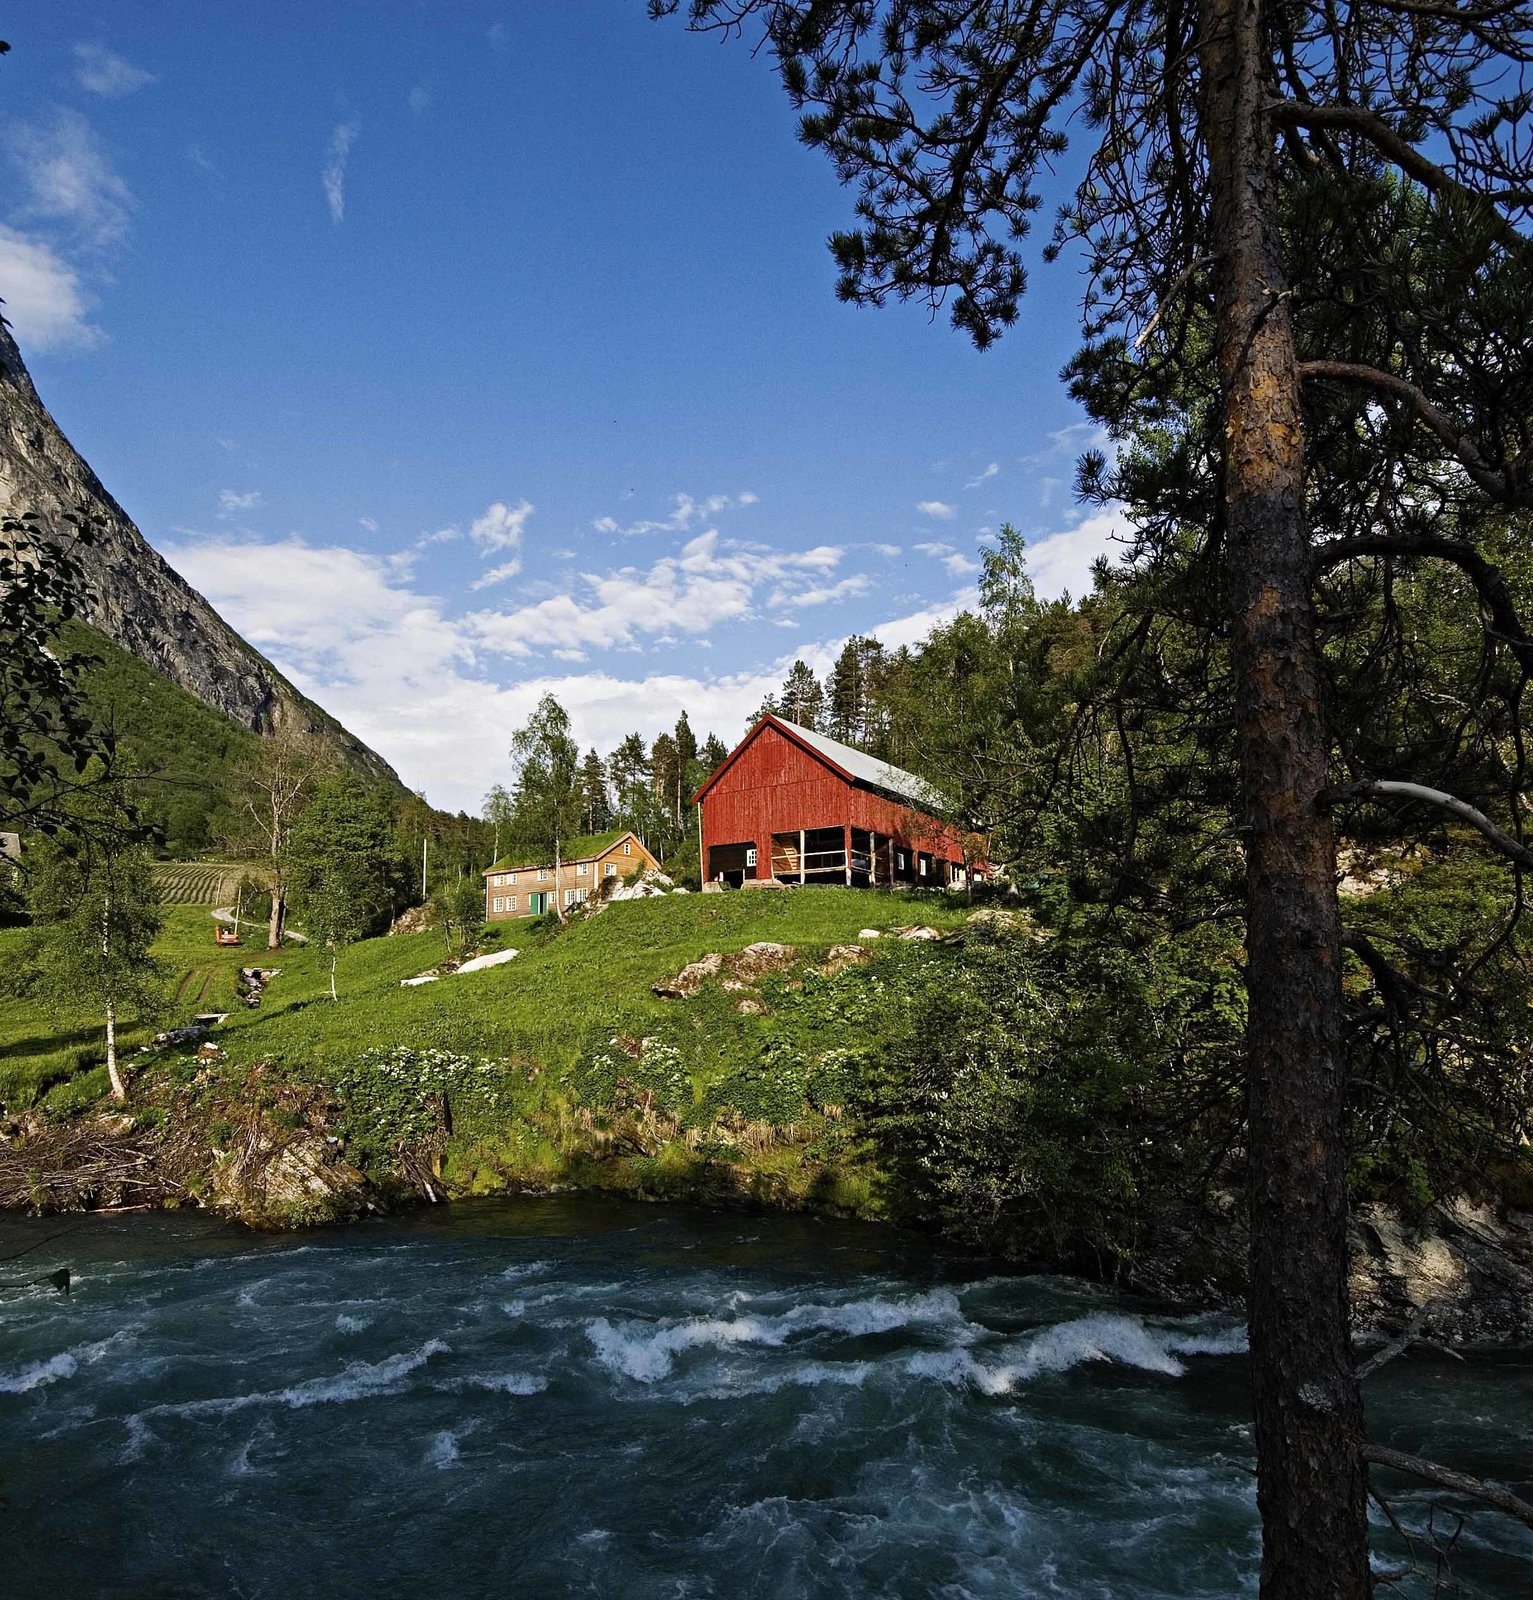 The Juvet is tucked into the woodsy corner of a classic Norwegian farm on the banks of the rushing Valldola River. The farm has existed here since at least the 1500s. Rustic Cabins Comprise This Impossibly Idyllic Hotel in Norway - Photo 3 of 8